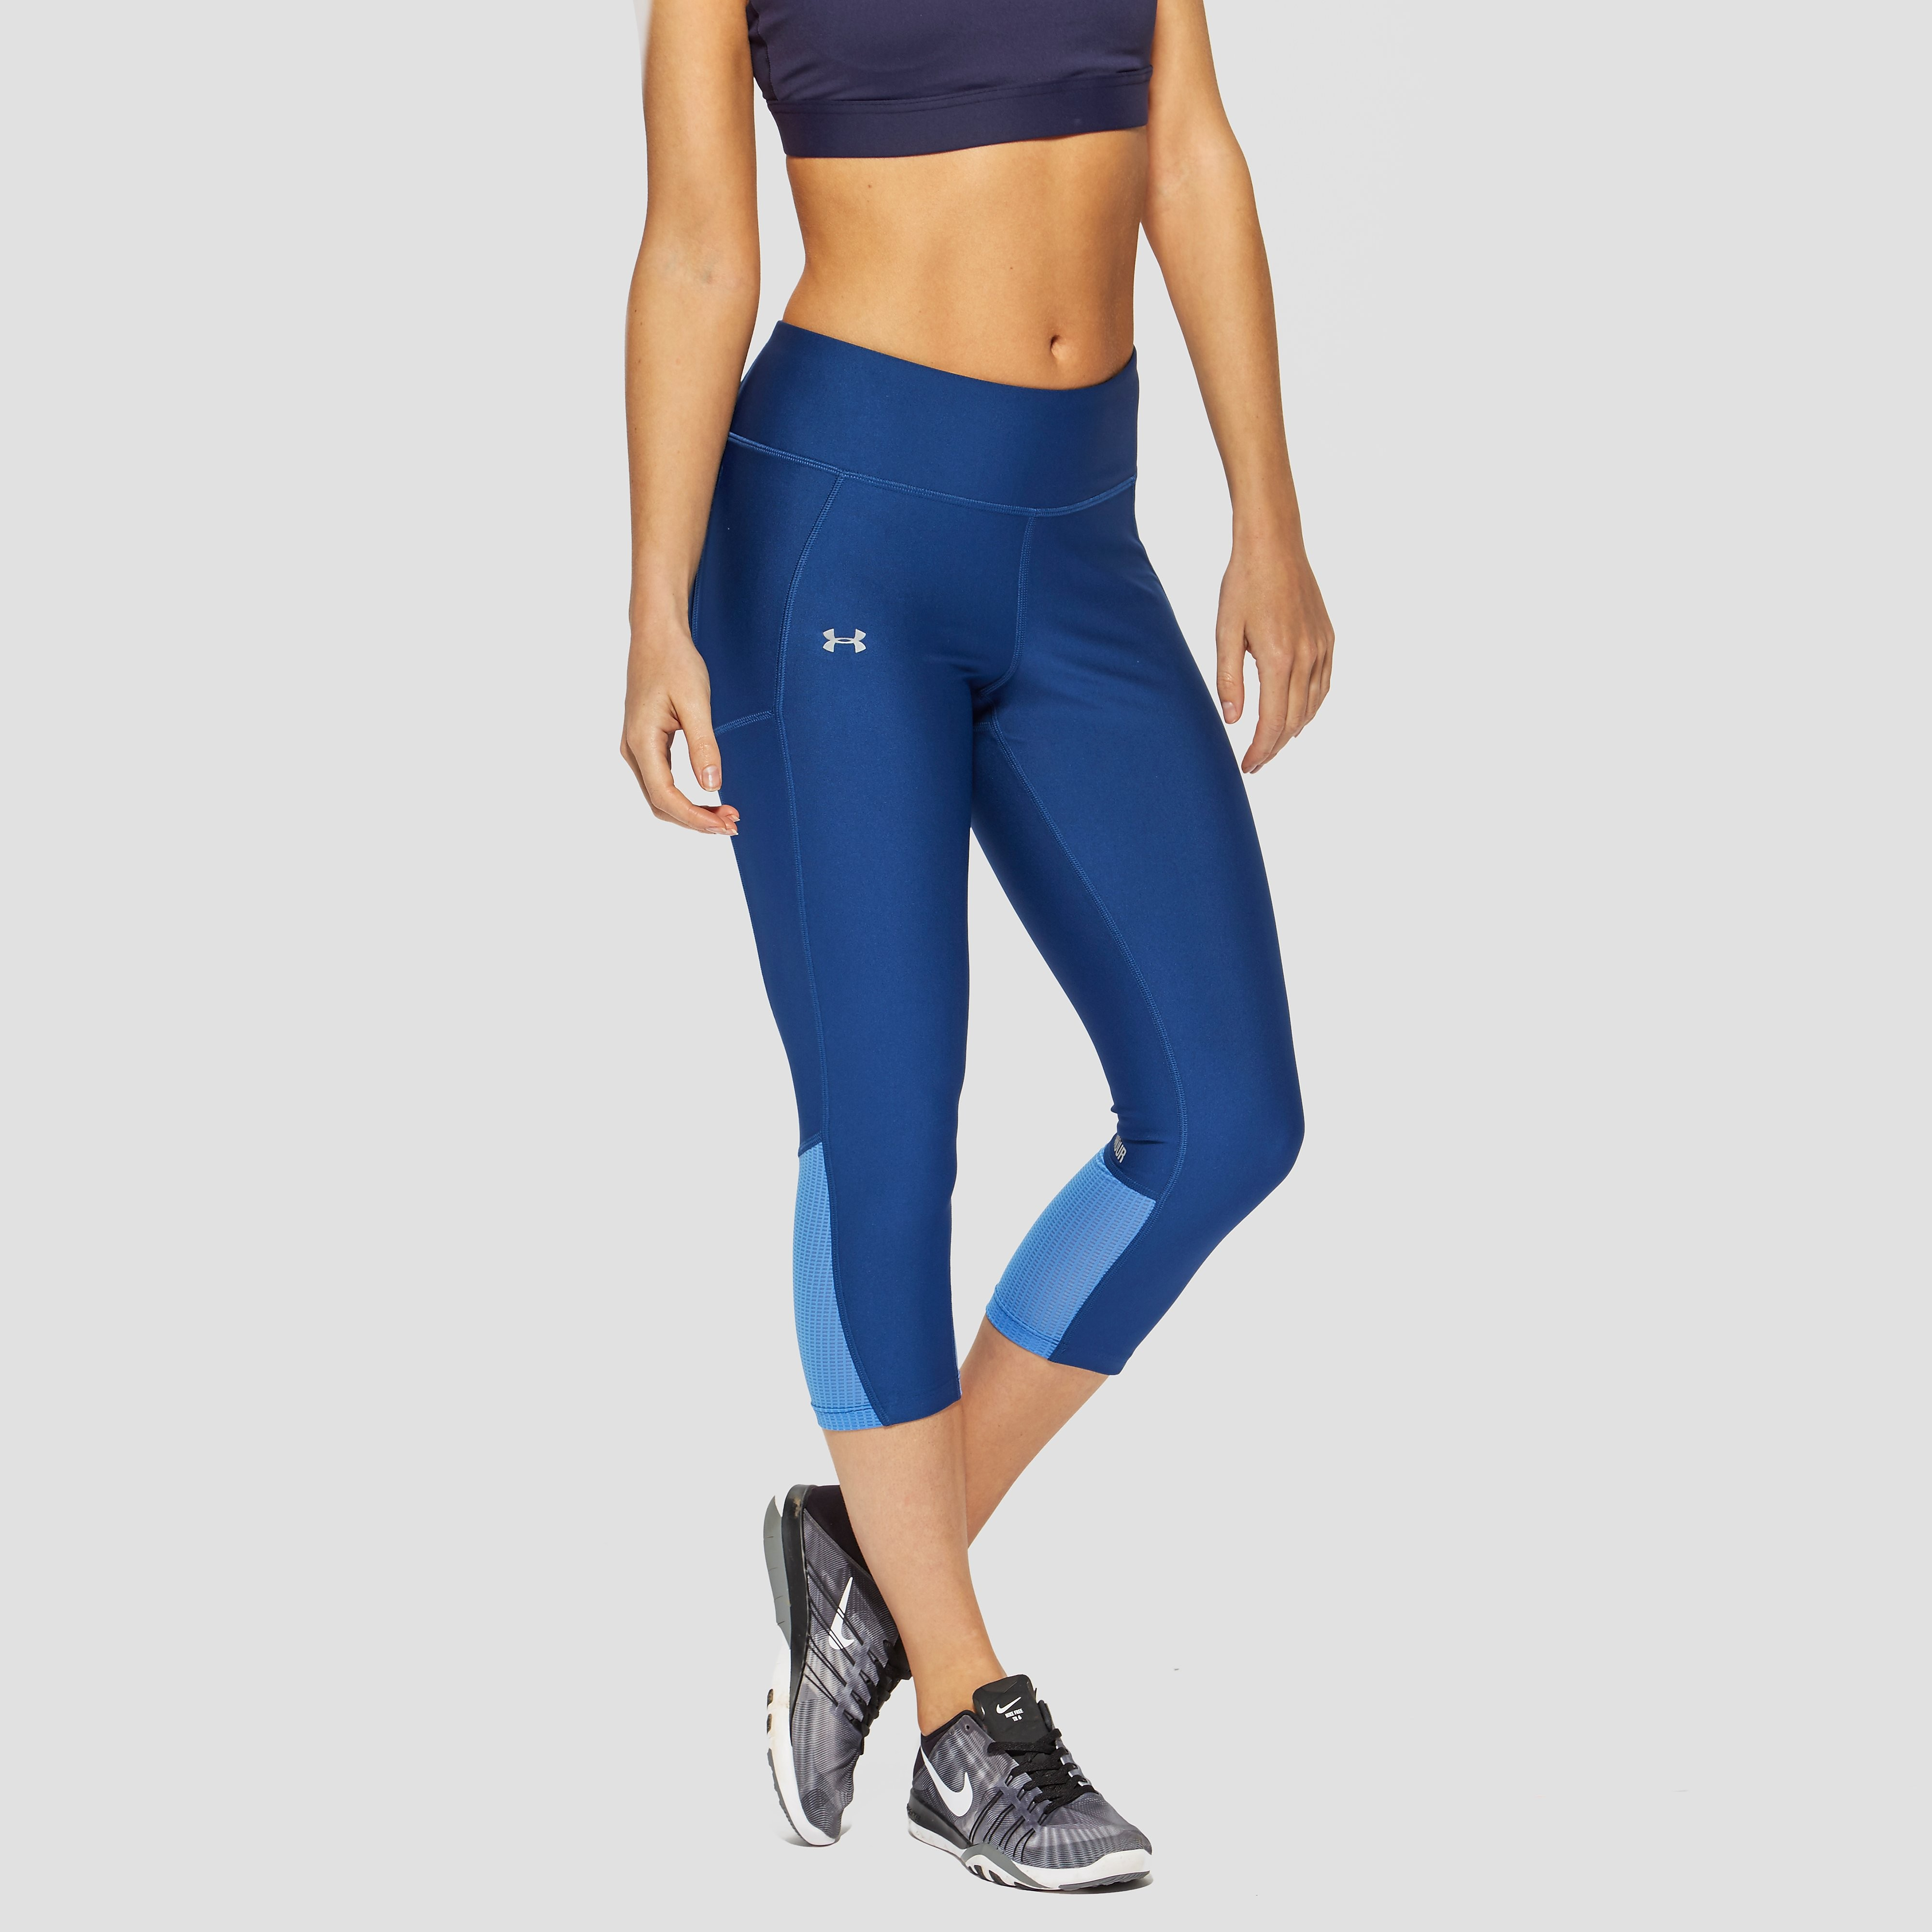 Under Armour FLY-BY CAPRI Compression Leggings